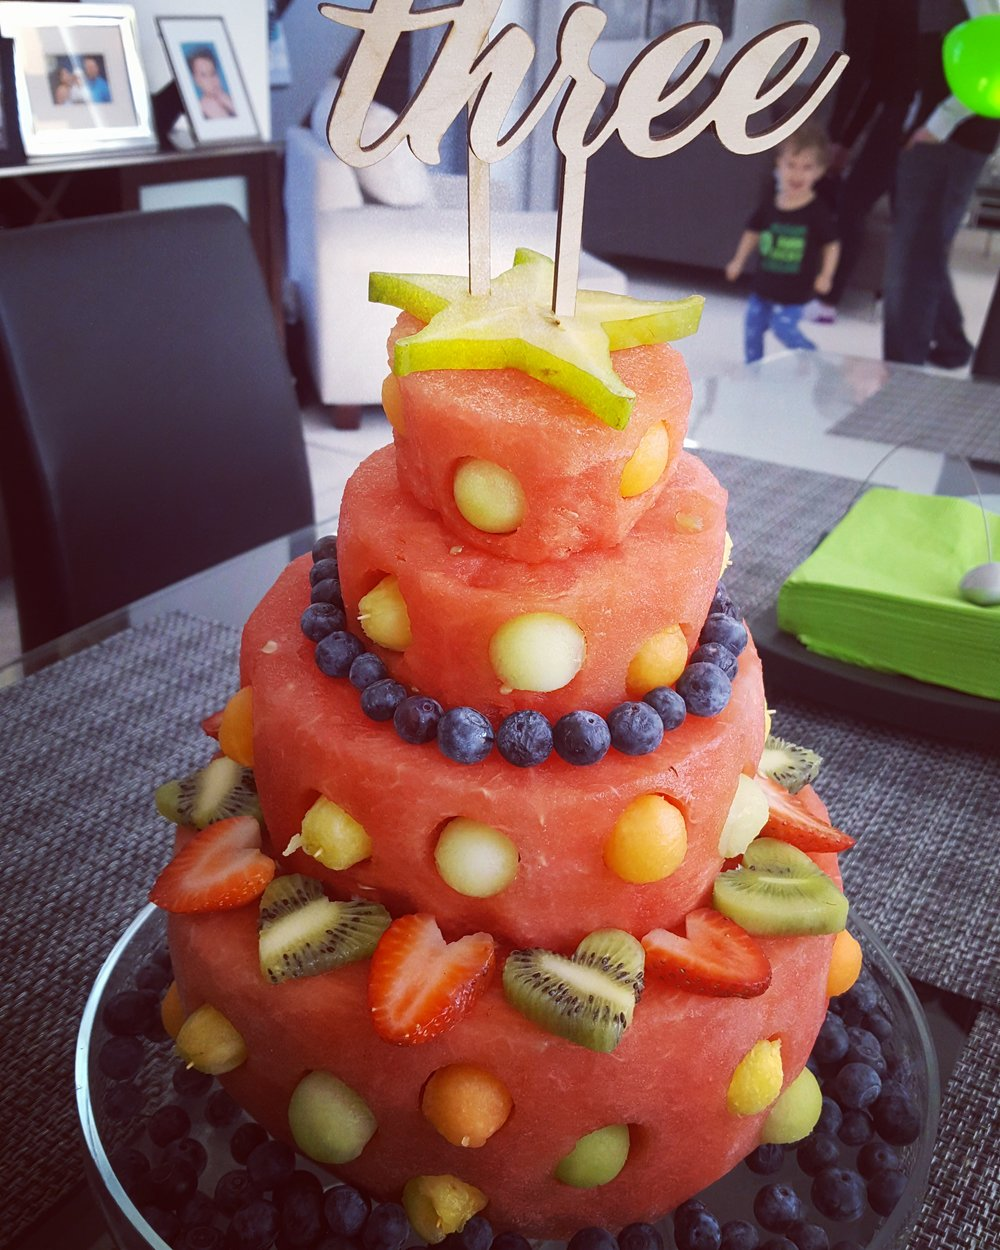 The Famous Watermelon Cake!!  Raw fruit cake with organic watermelon, berries, melon, kiwi and more.   $55/serves 20-25